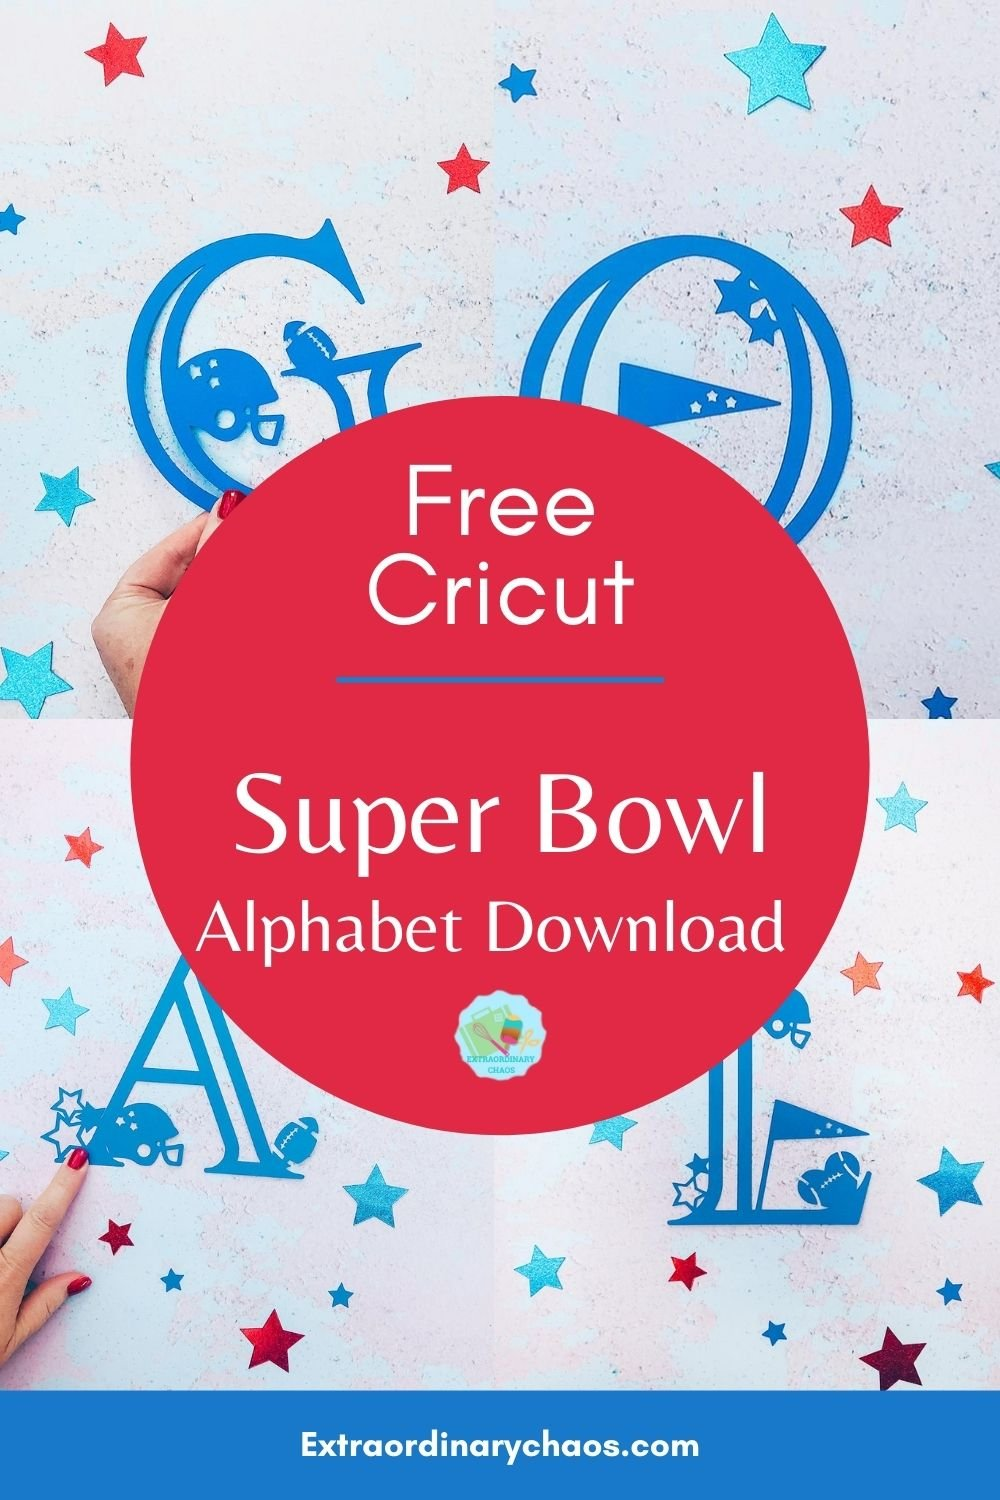 Free downloadable Cricut Super Bowl Alphabet and numbers for Football related Cricut projects